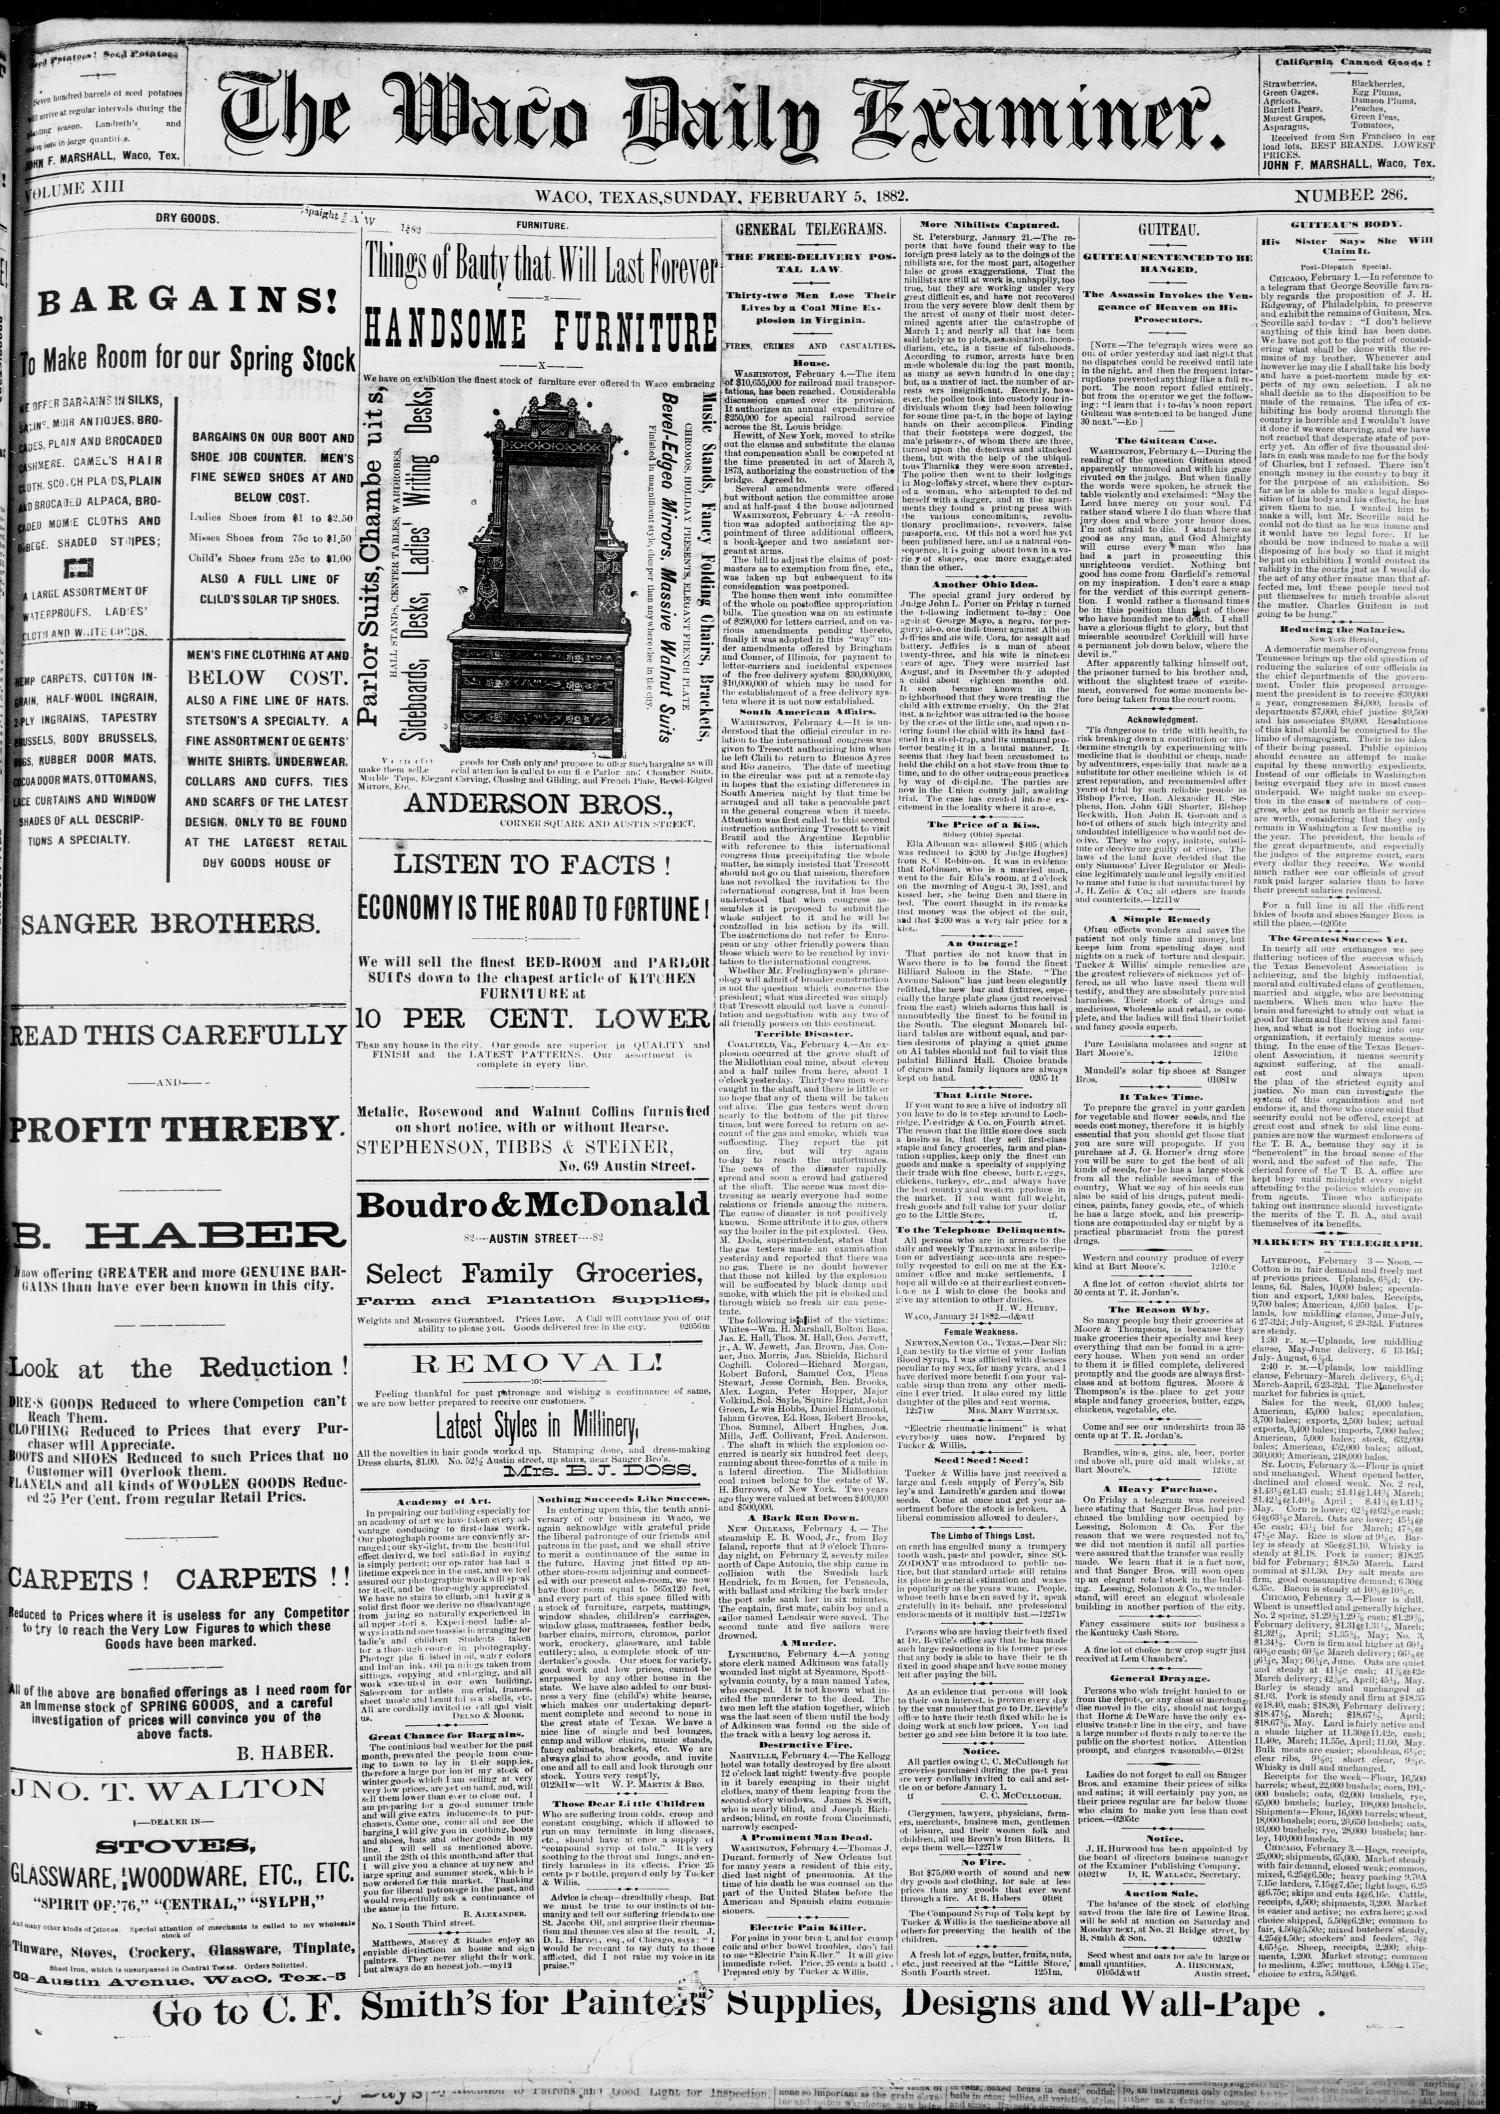 The Waco Daily Examiner. (Waco, Tex.), Vol. 13, No. 286, Ed. 1, Sunday, February 5, 1882                                                                                                      [Sequence #]: 1 of 4